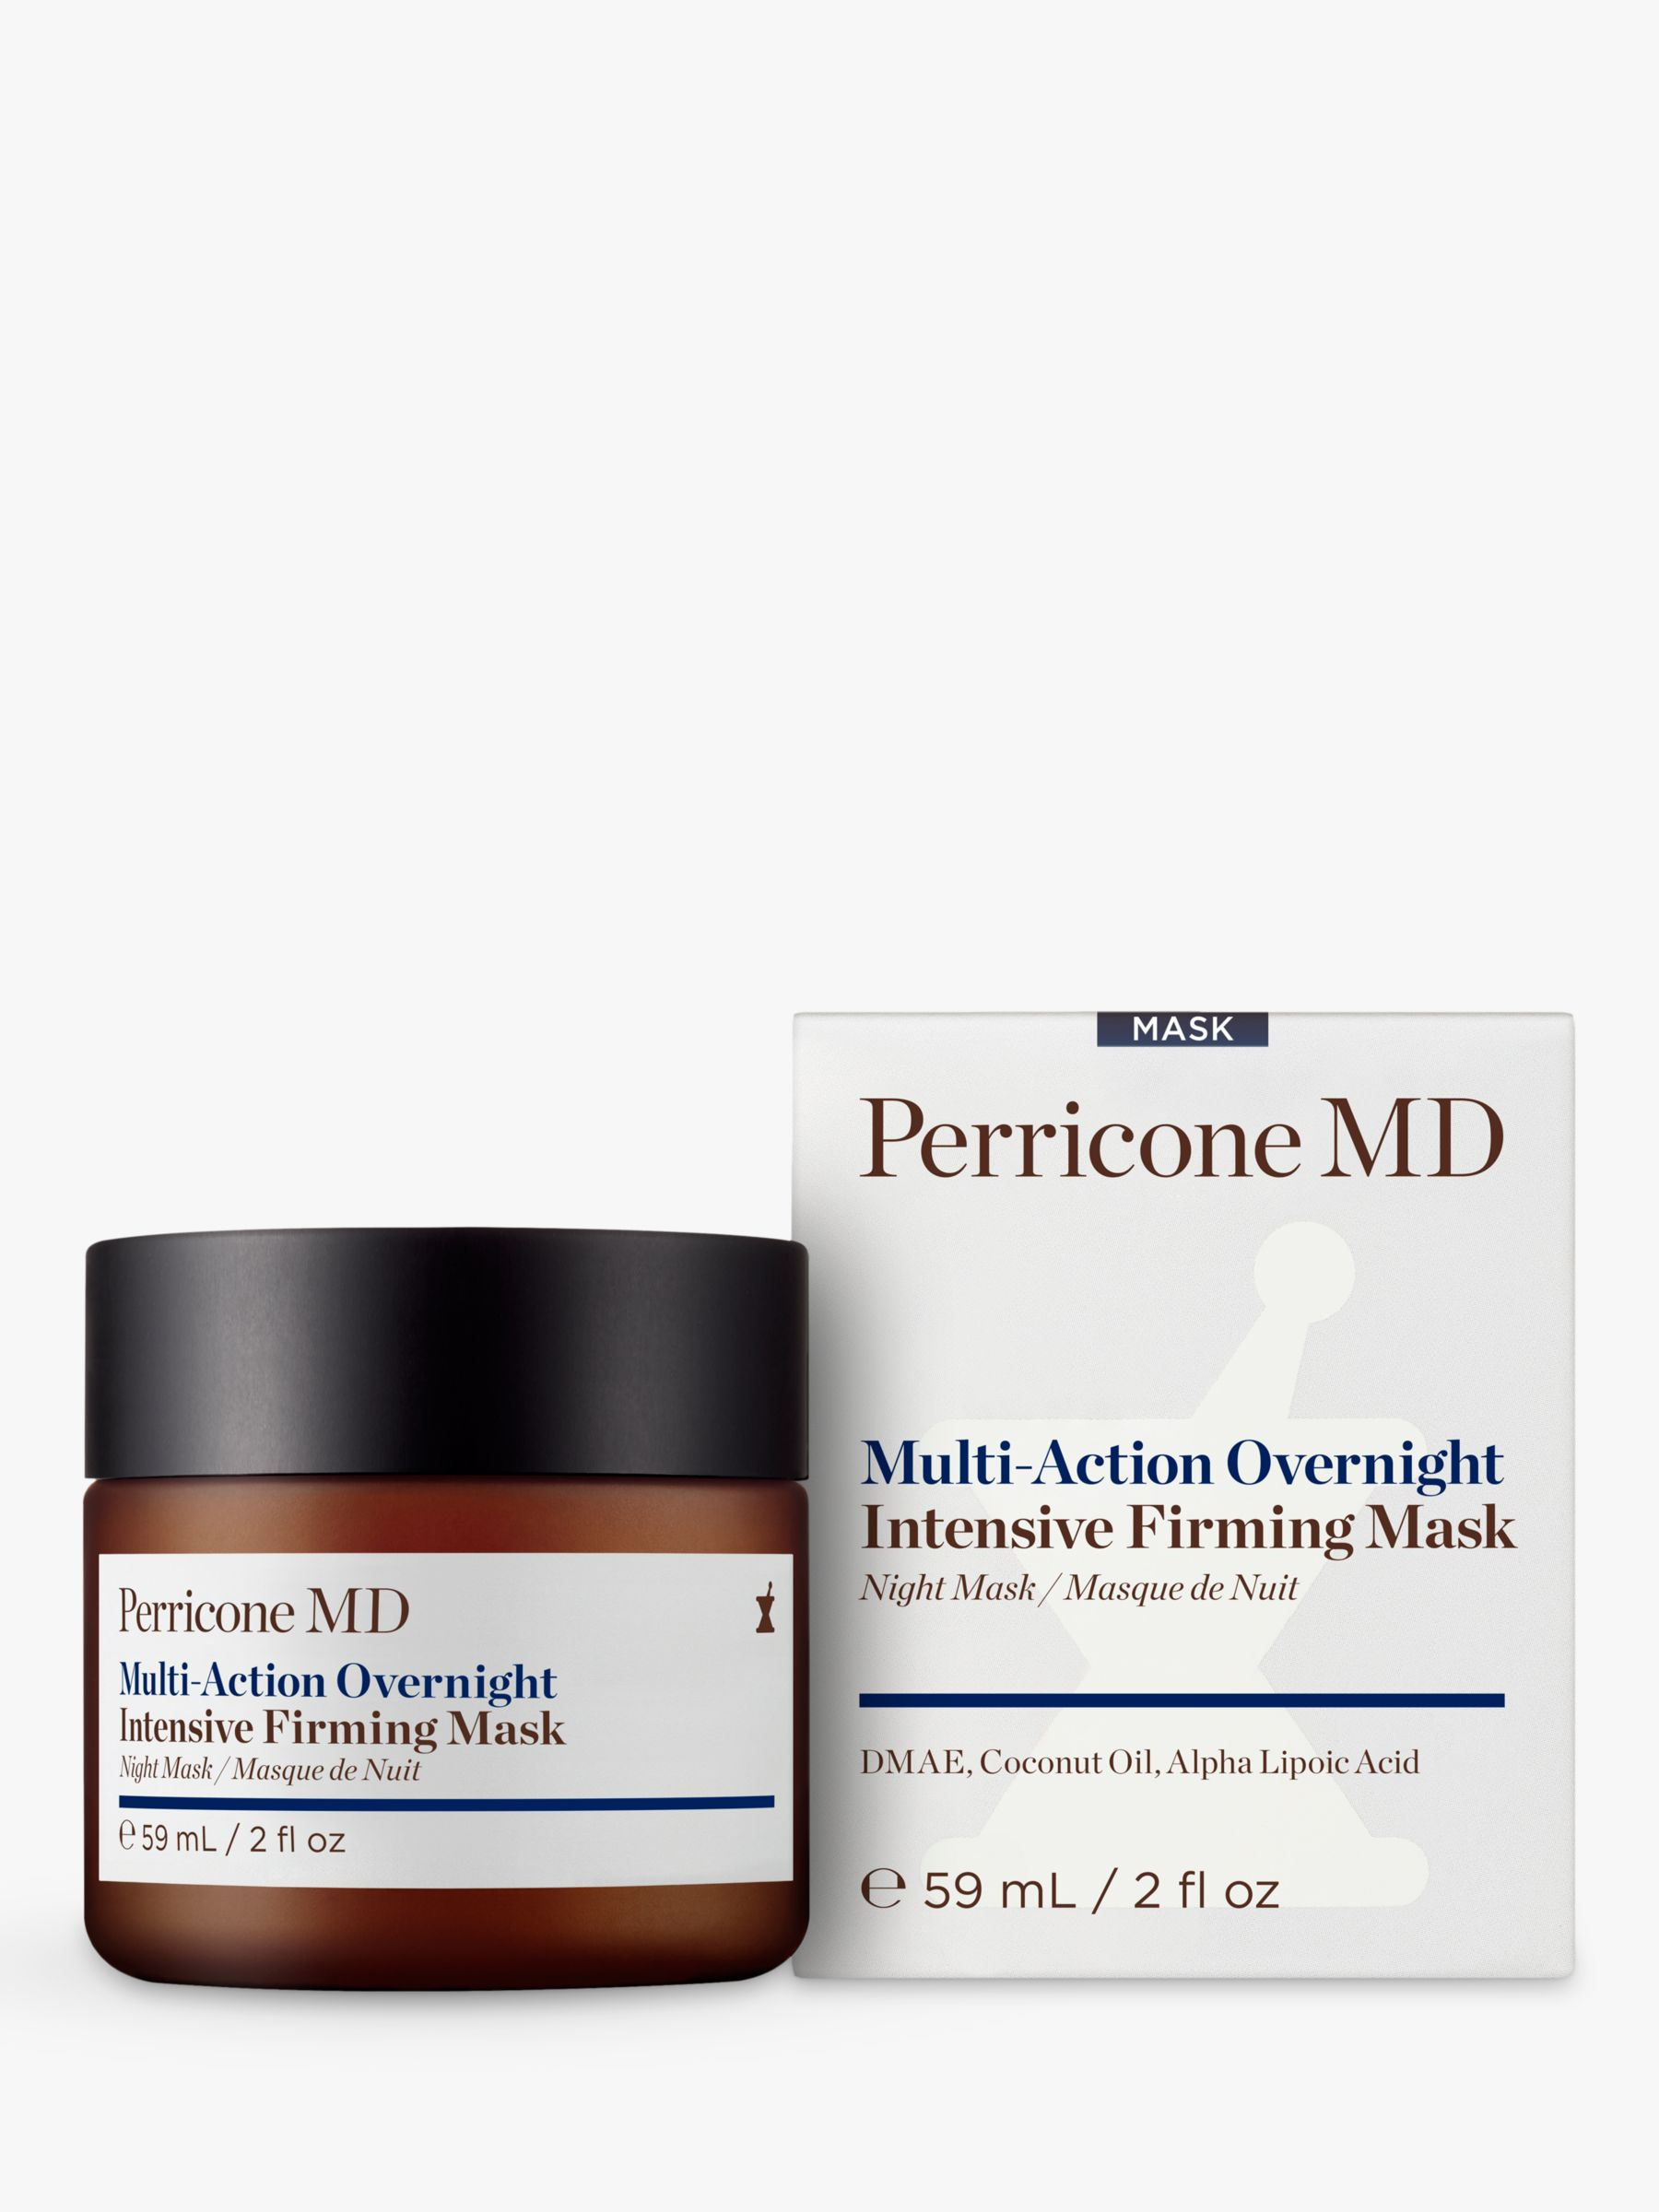 Perricone MD Perricone MD Multi-Action Overnight Intensive Firming Mask, 59ml